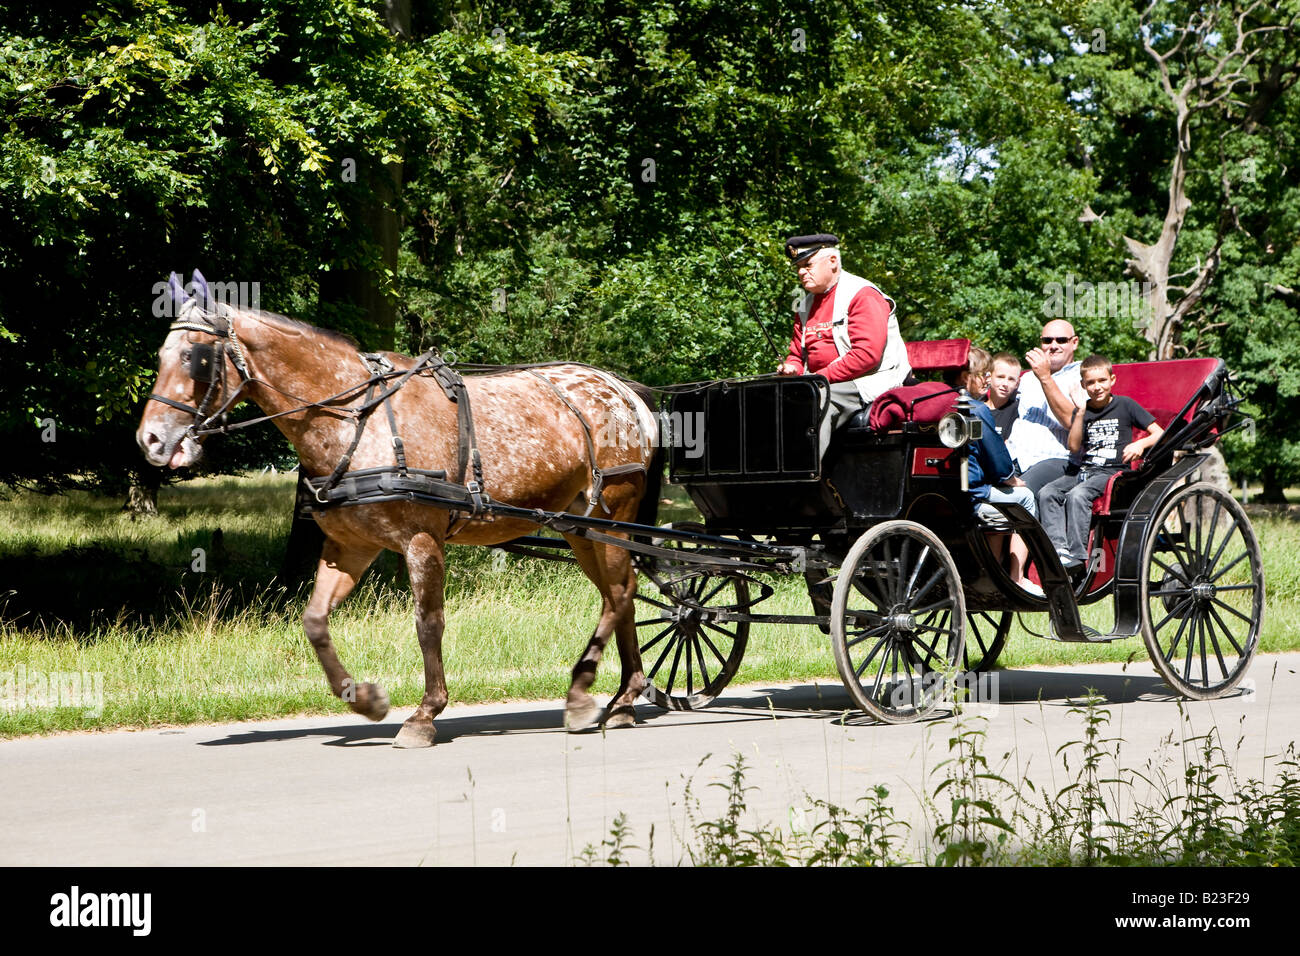 Sightseeing in a Hackney carriage in the danish park Dyrehaven - Stock Image